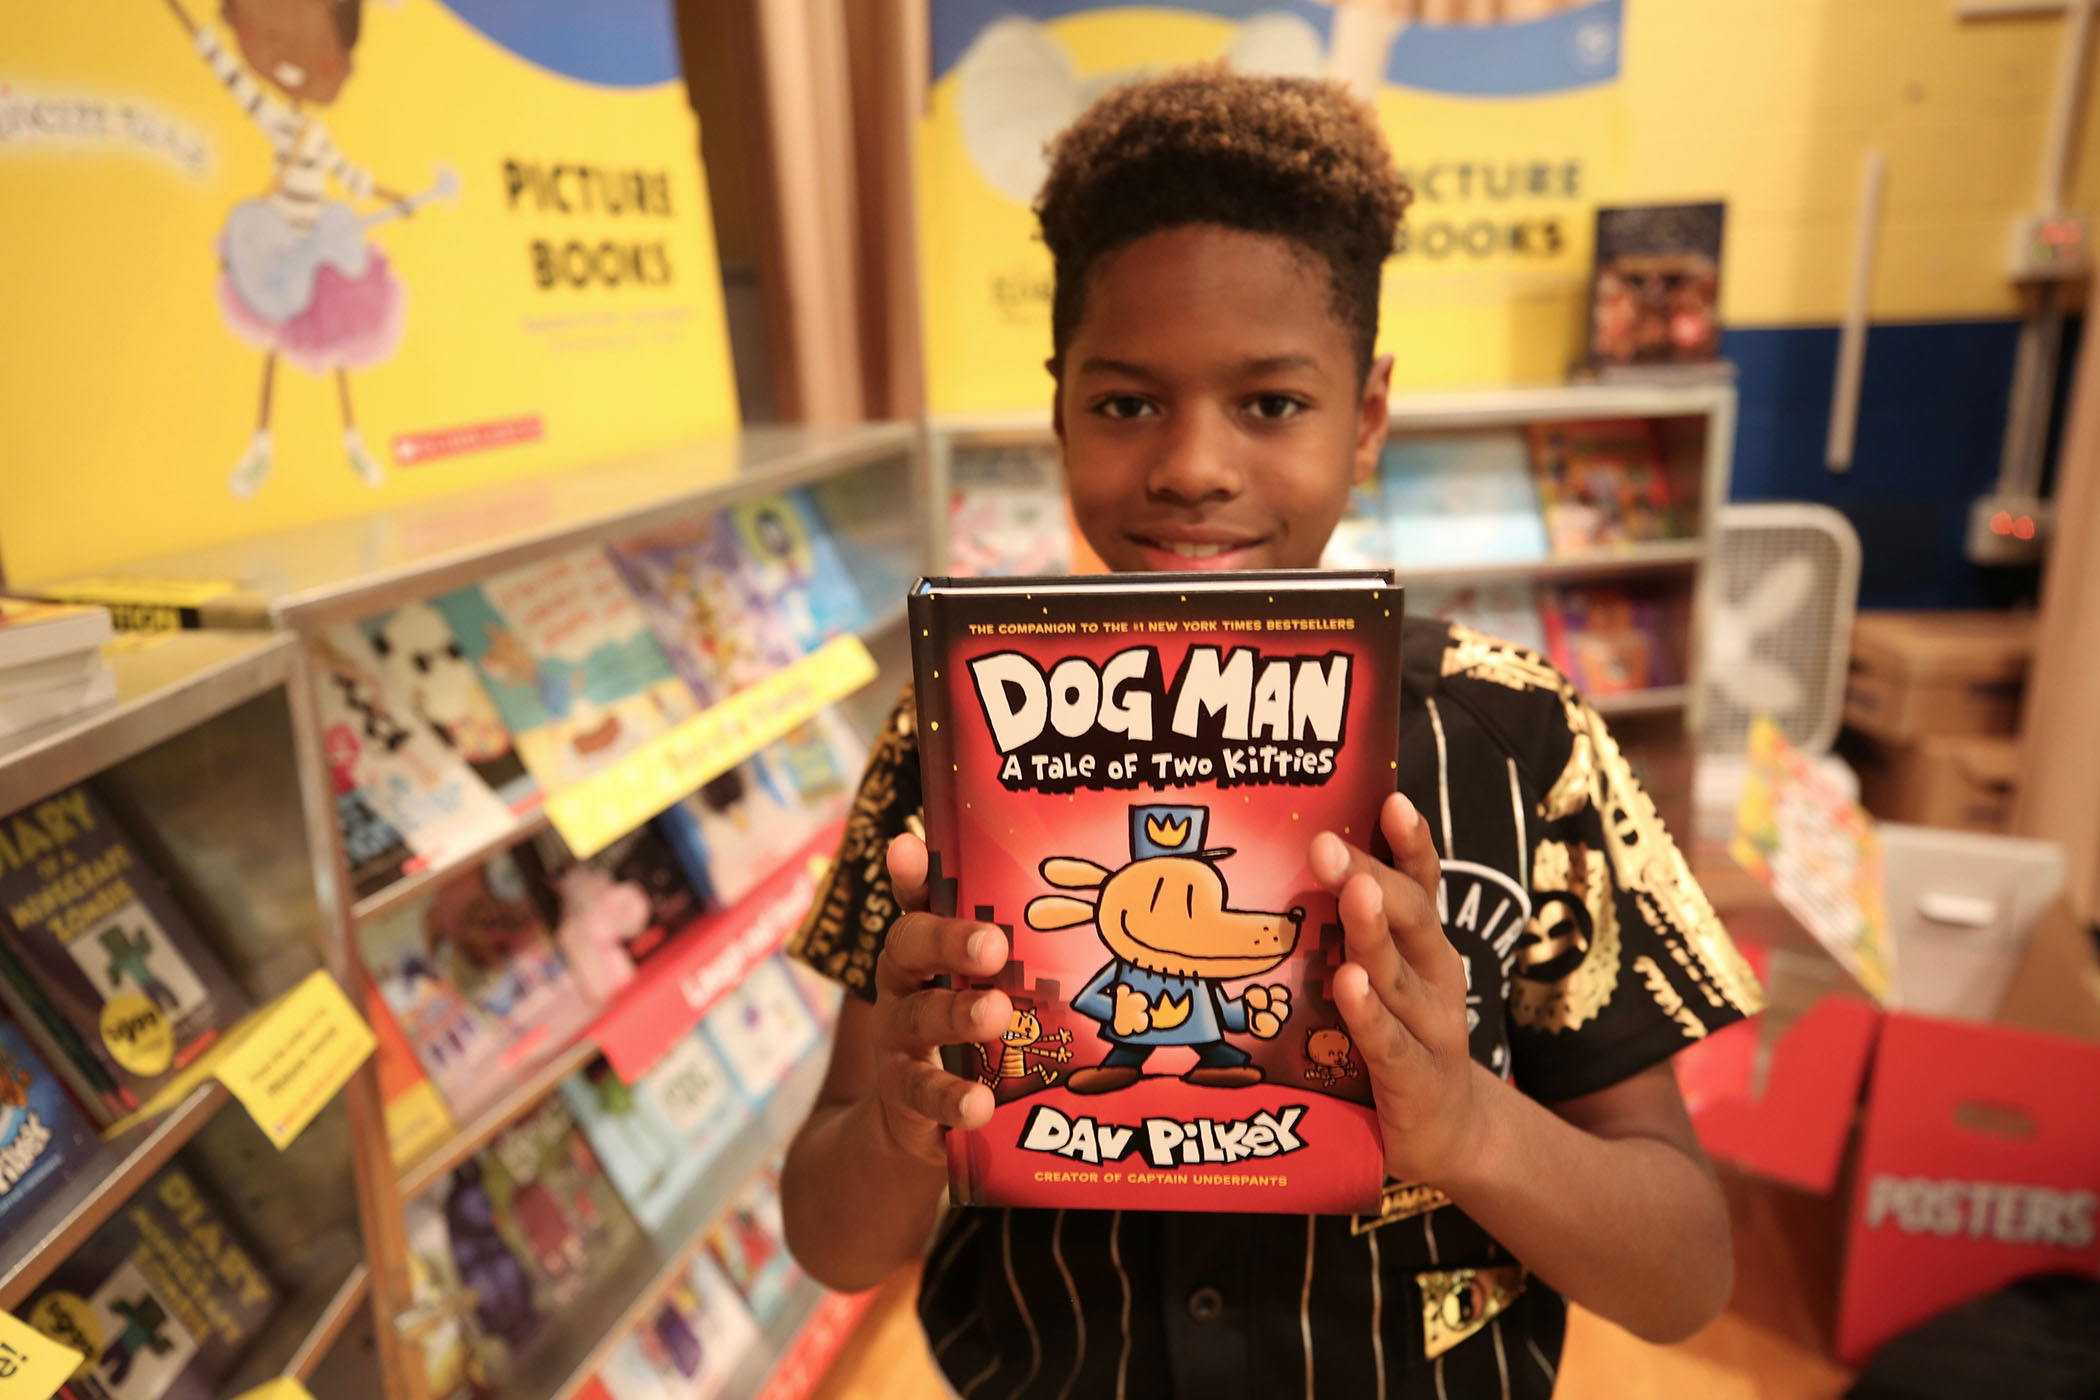 A QUE student holds up his favorite book series at the school's book fair.